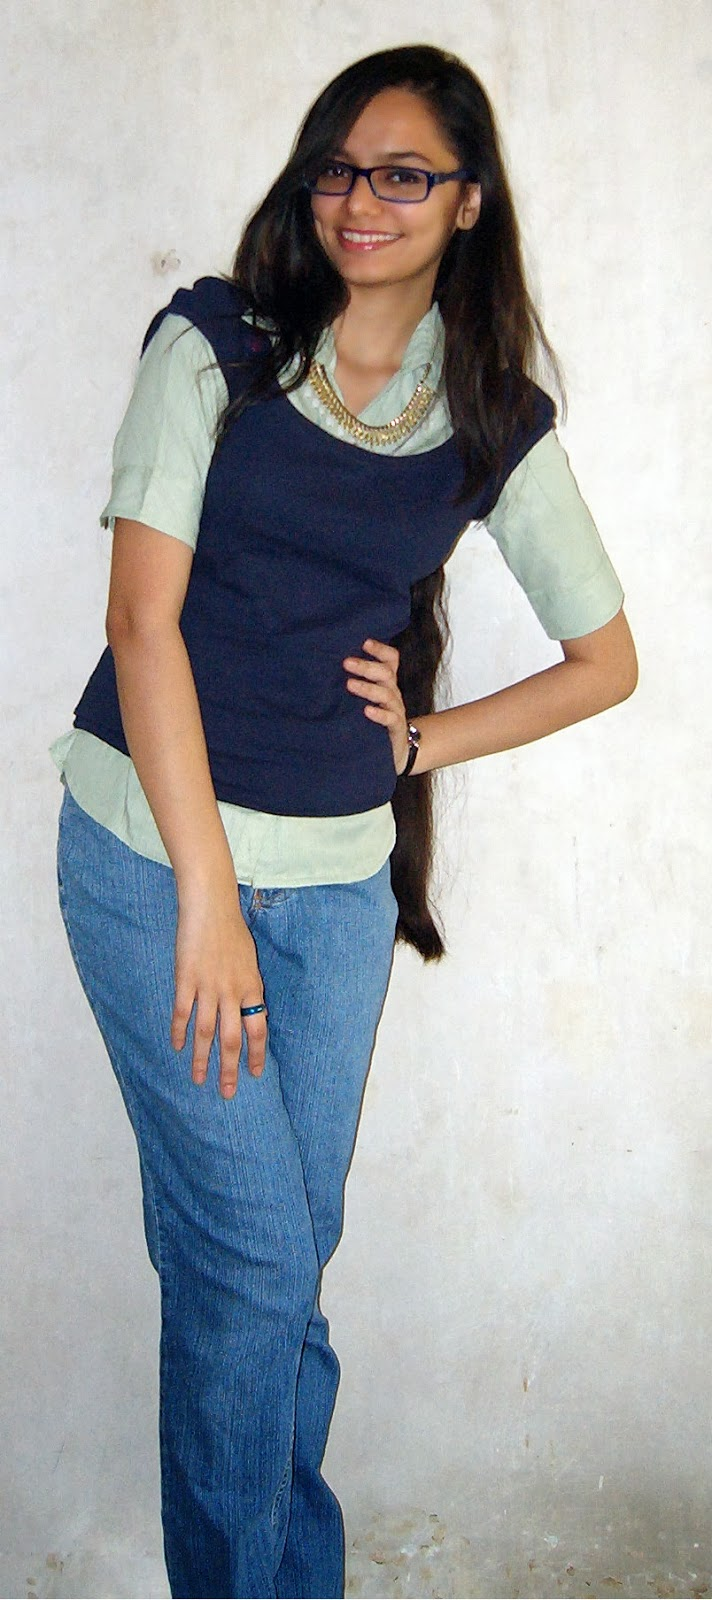 mumbai street fashion, casual workwear in mumbai, jeans and shirt with jumper, how to do layering